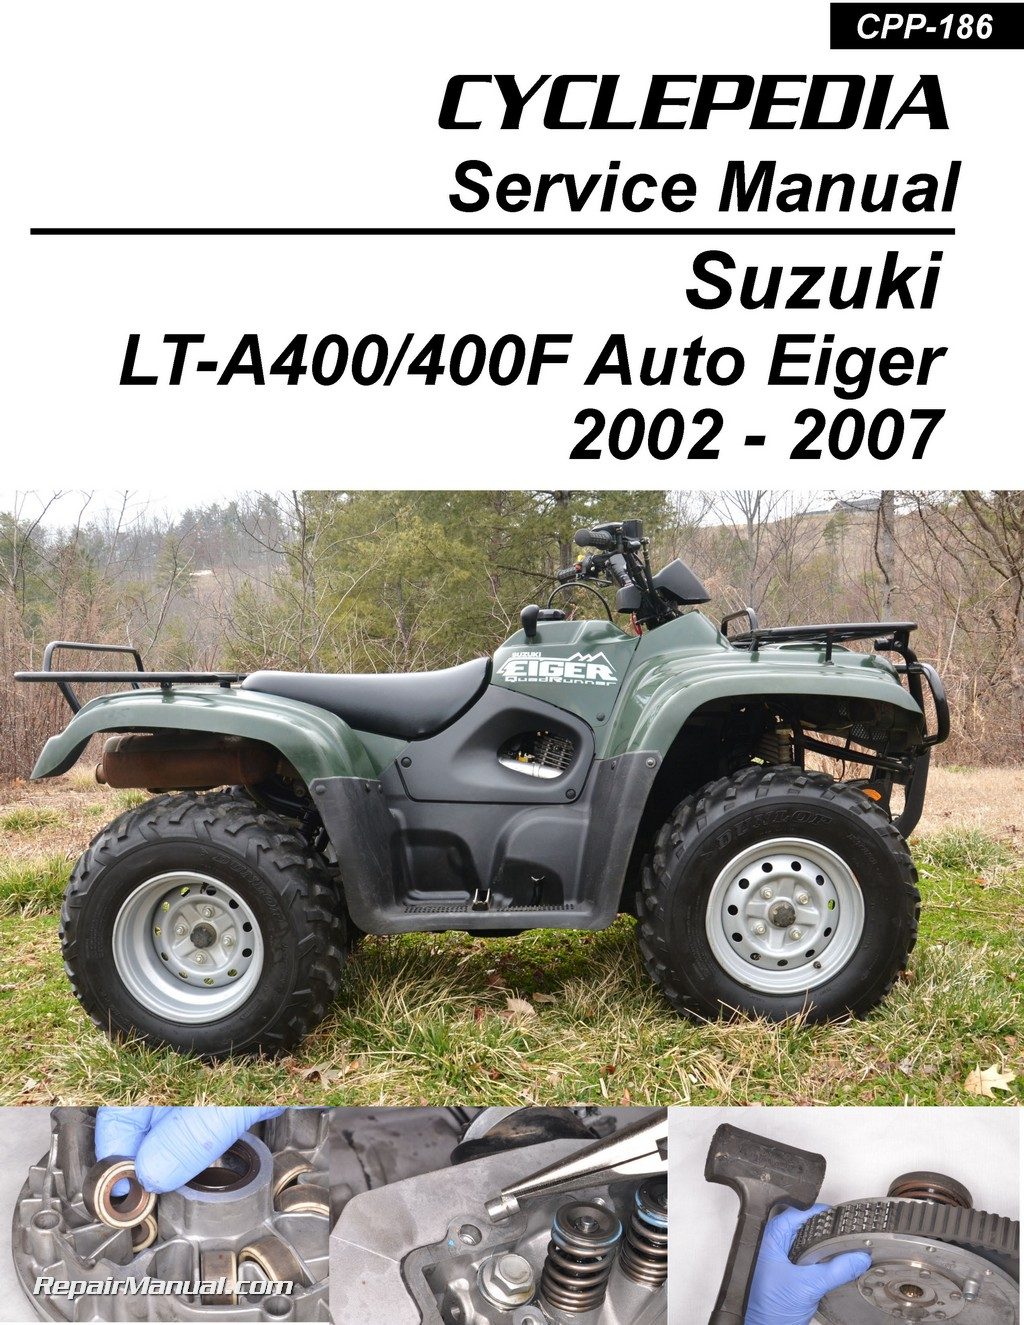 A Qkw likewise Suzuki Auto Eiger Lt A400400f Atv Service Manual Cpp 186 Print in addition Dsg moreover 1973 Ford Torino Parts Catalog likewise TOMOS c 190. on automatic transmission parts diagram